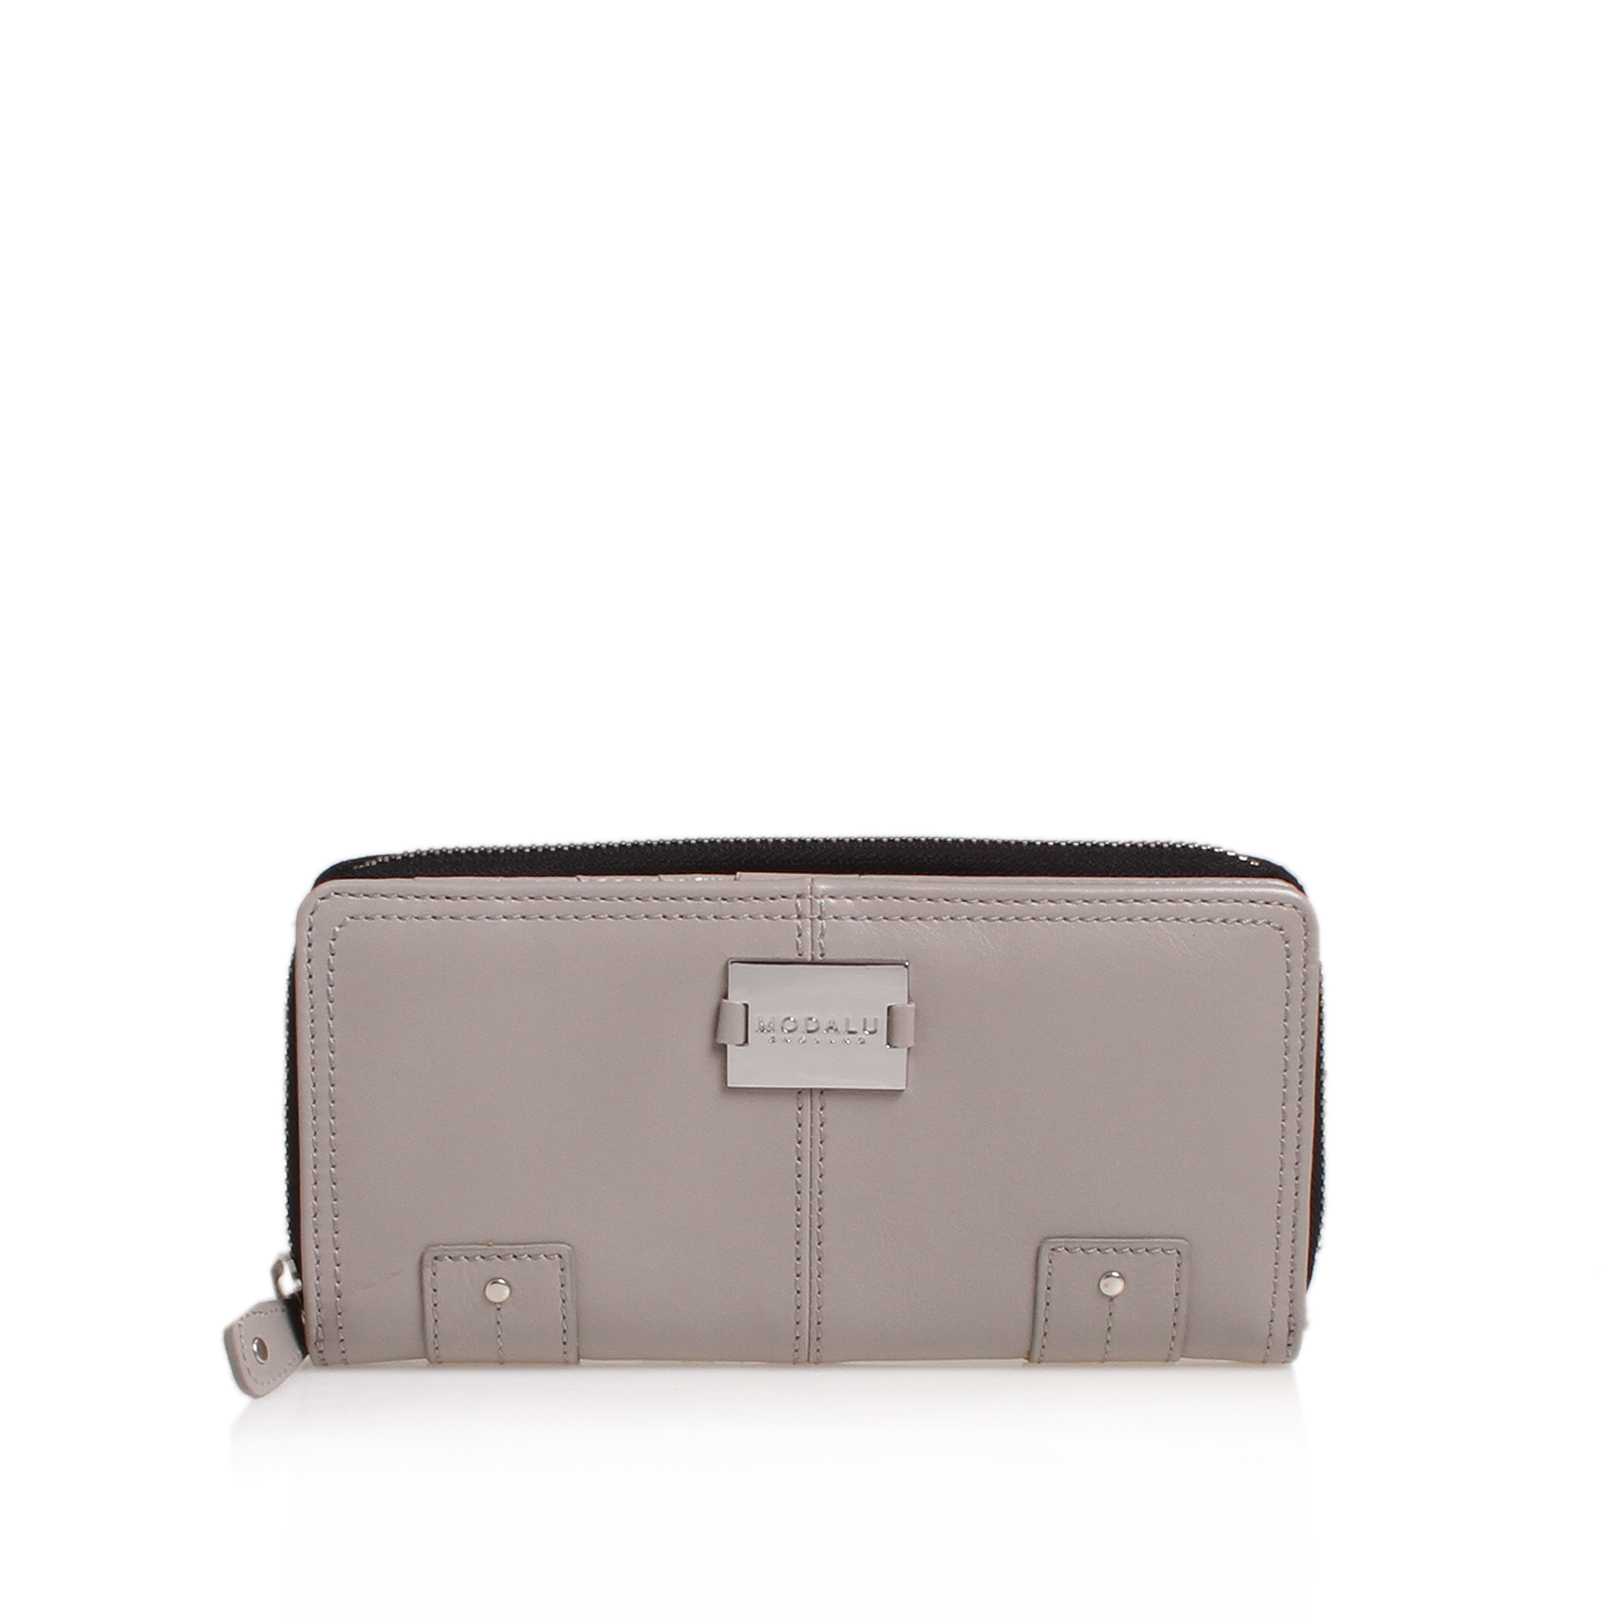 PIPPA 2 LEATHER PURSE